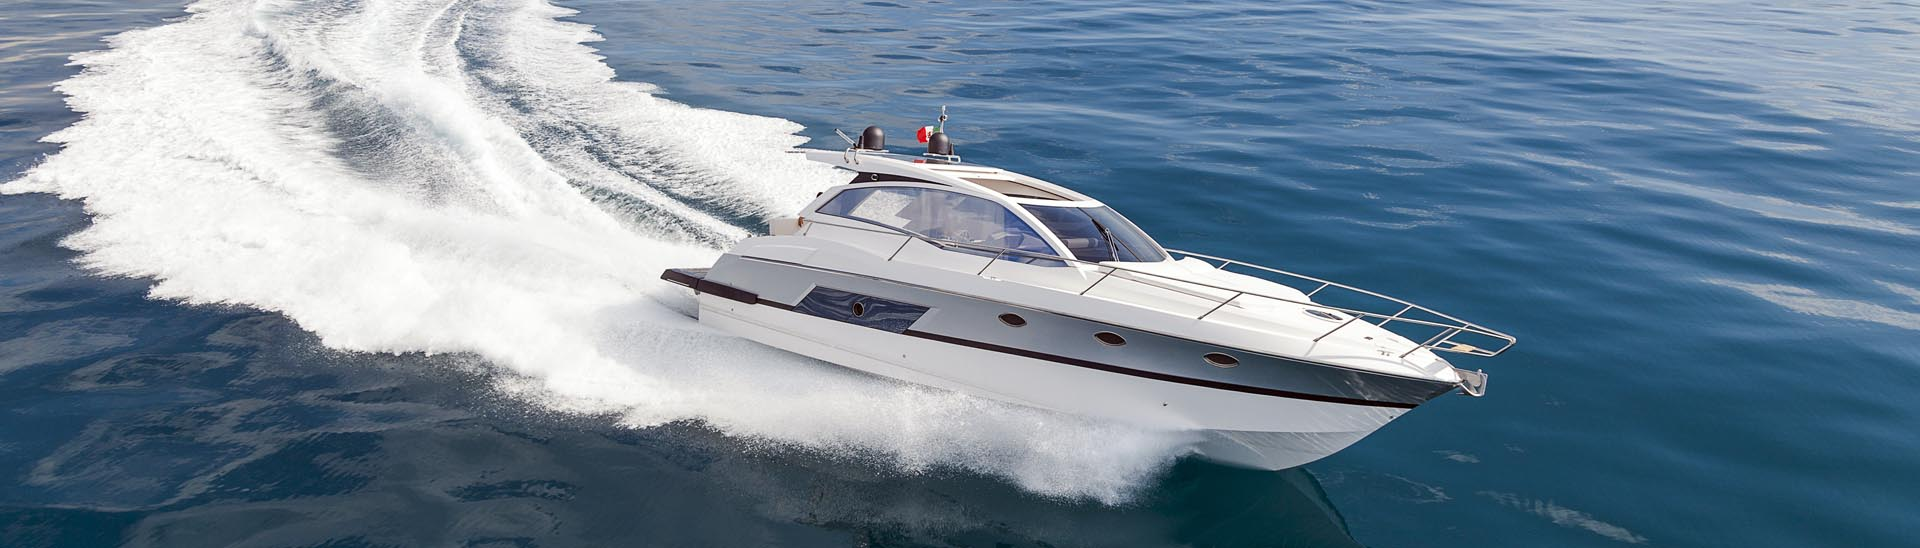 boat insurance miami florida